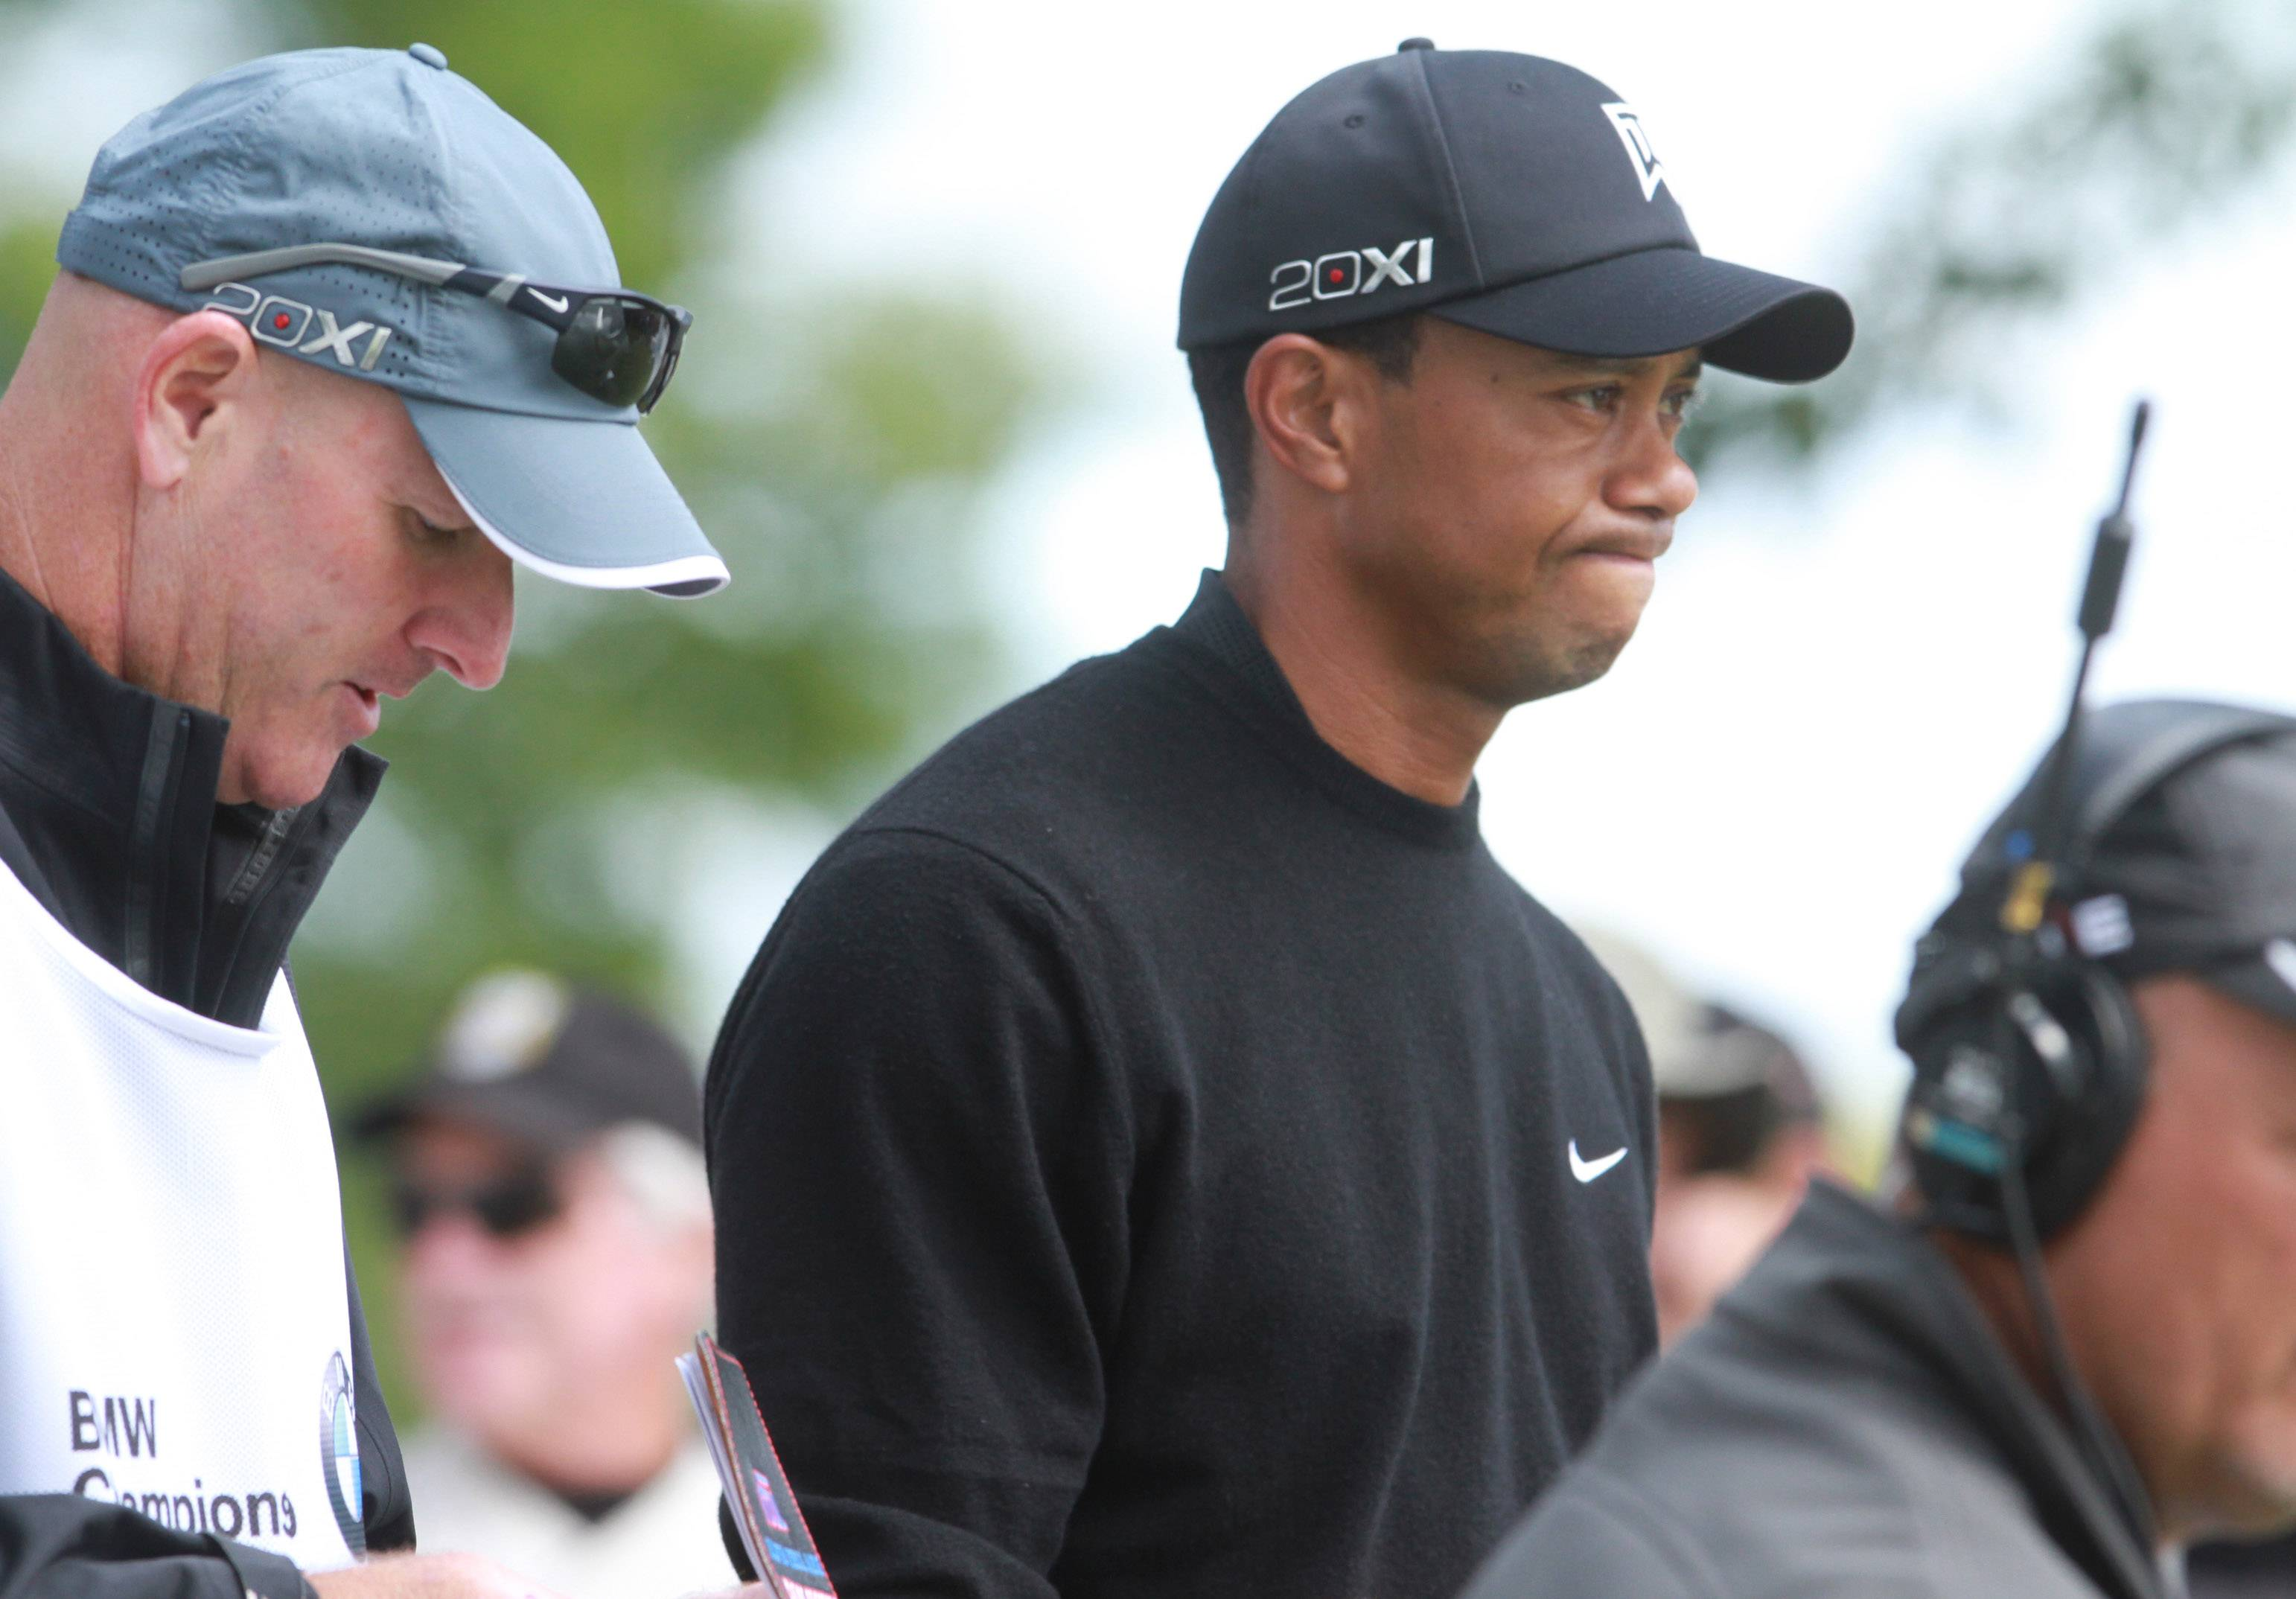 Tiger Woods reacts after teeing off on the 10th hole.